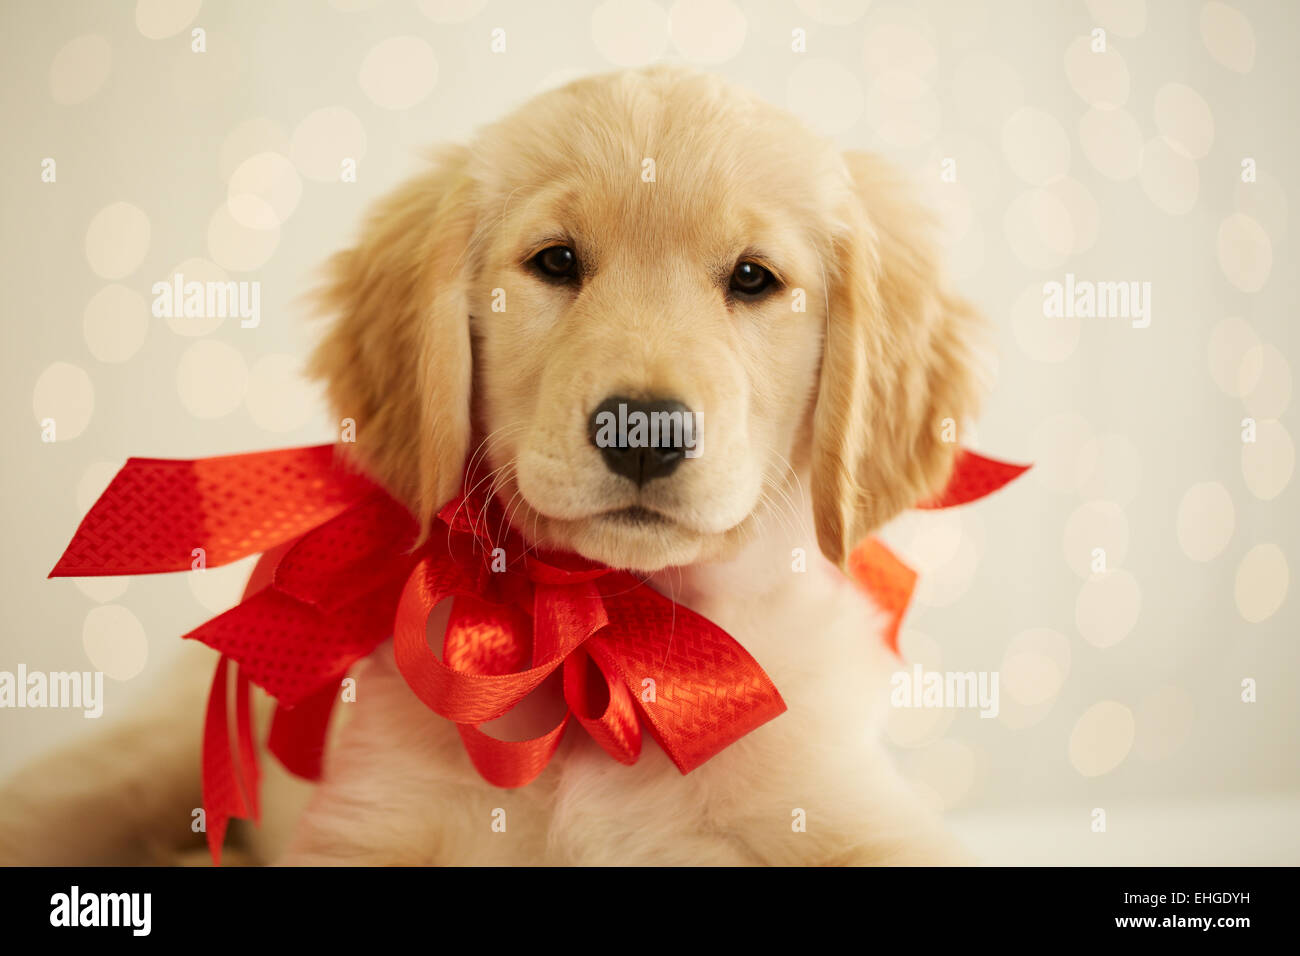 Golden Retriever Puppy With Red Bow Stock Photo 79652821 Alamy